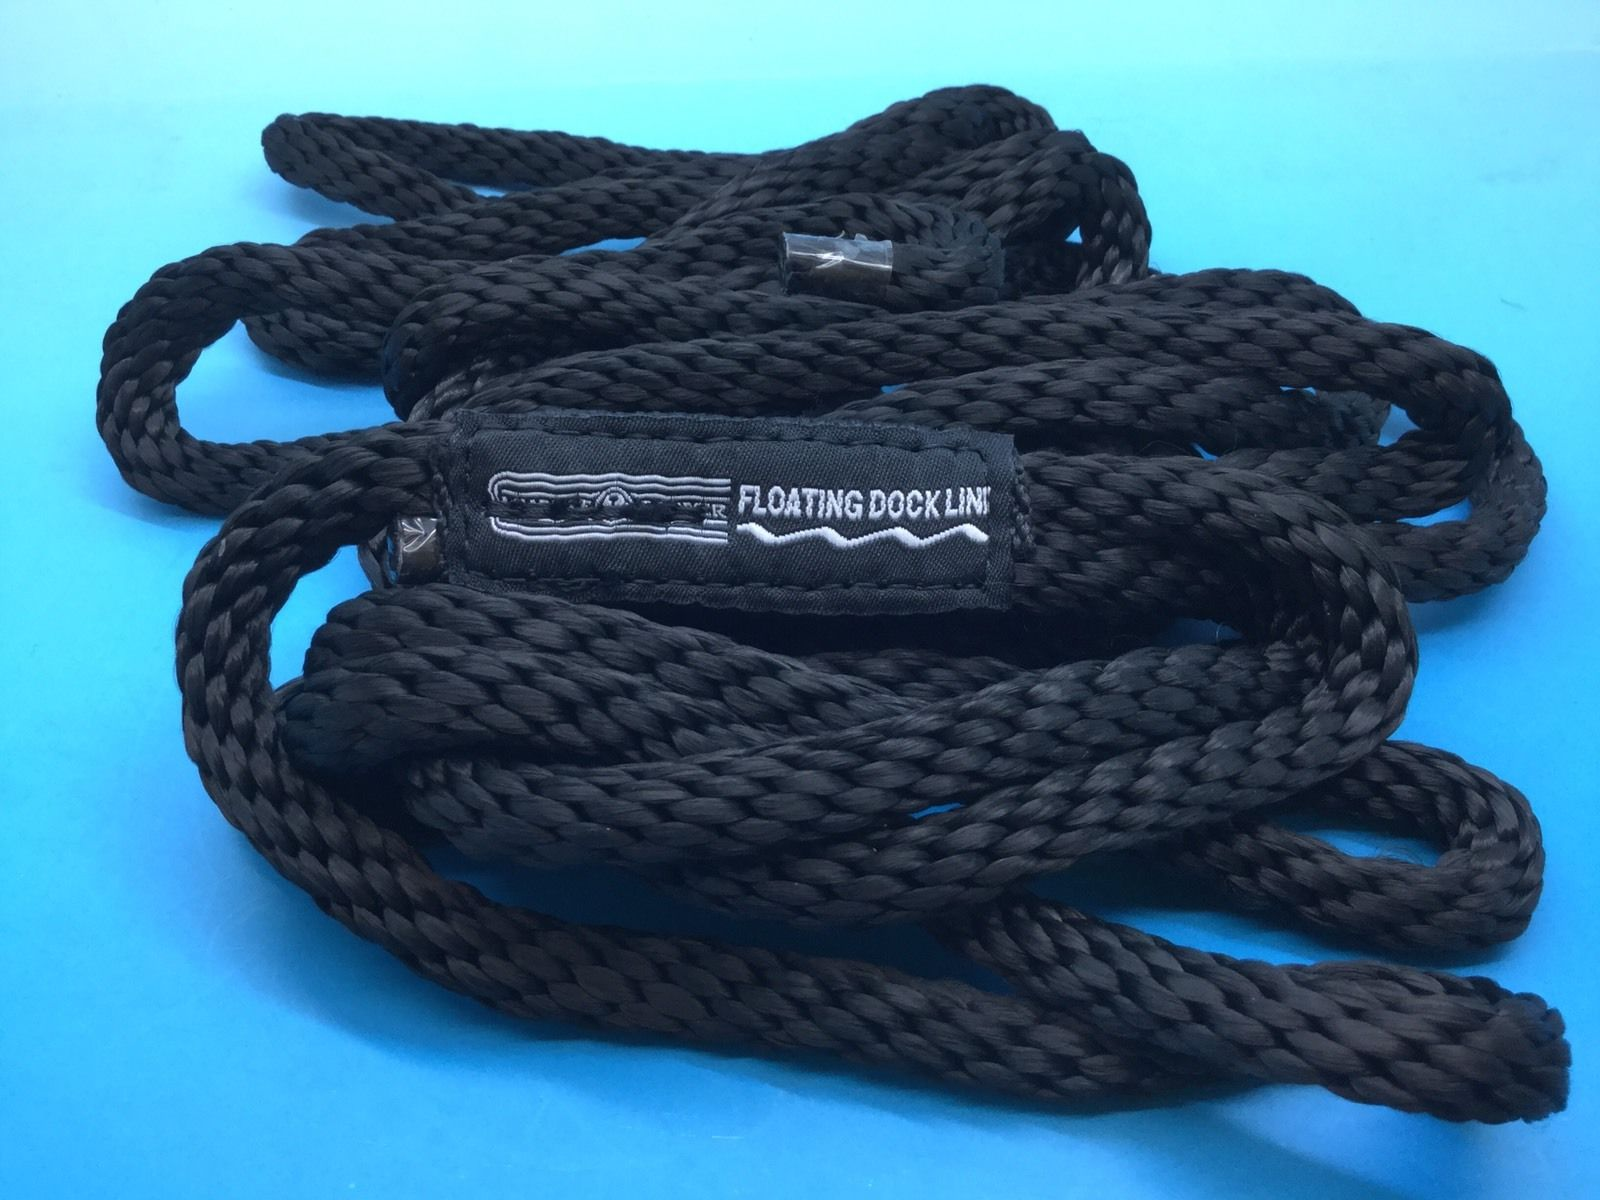 Mooring rope 15 ft long 3/8 diameter